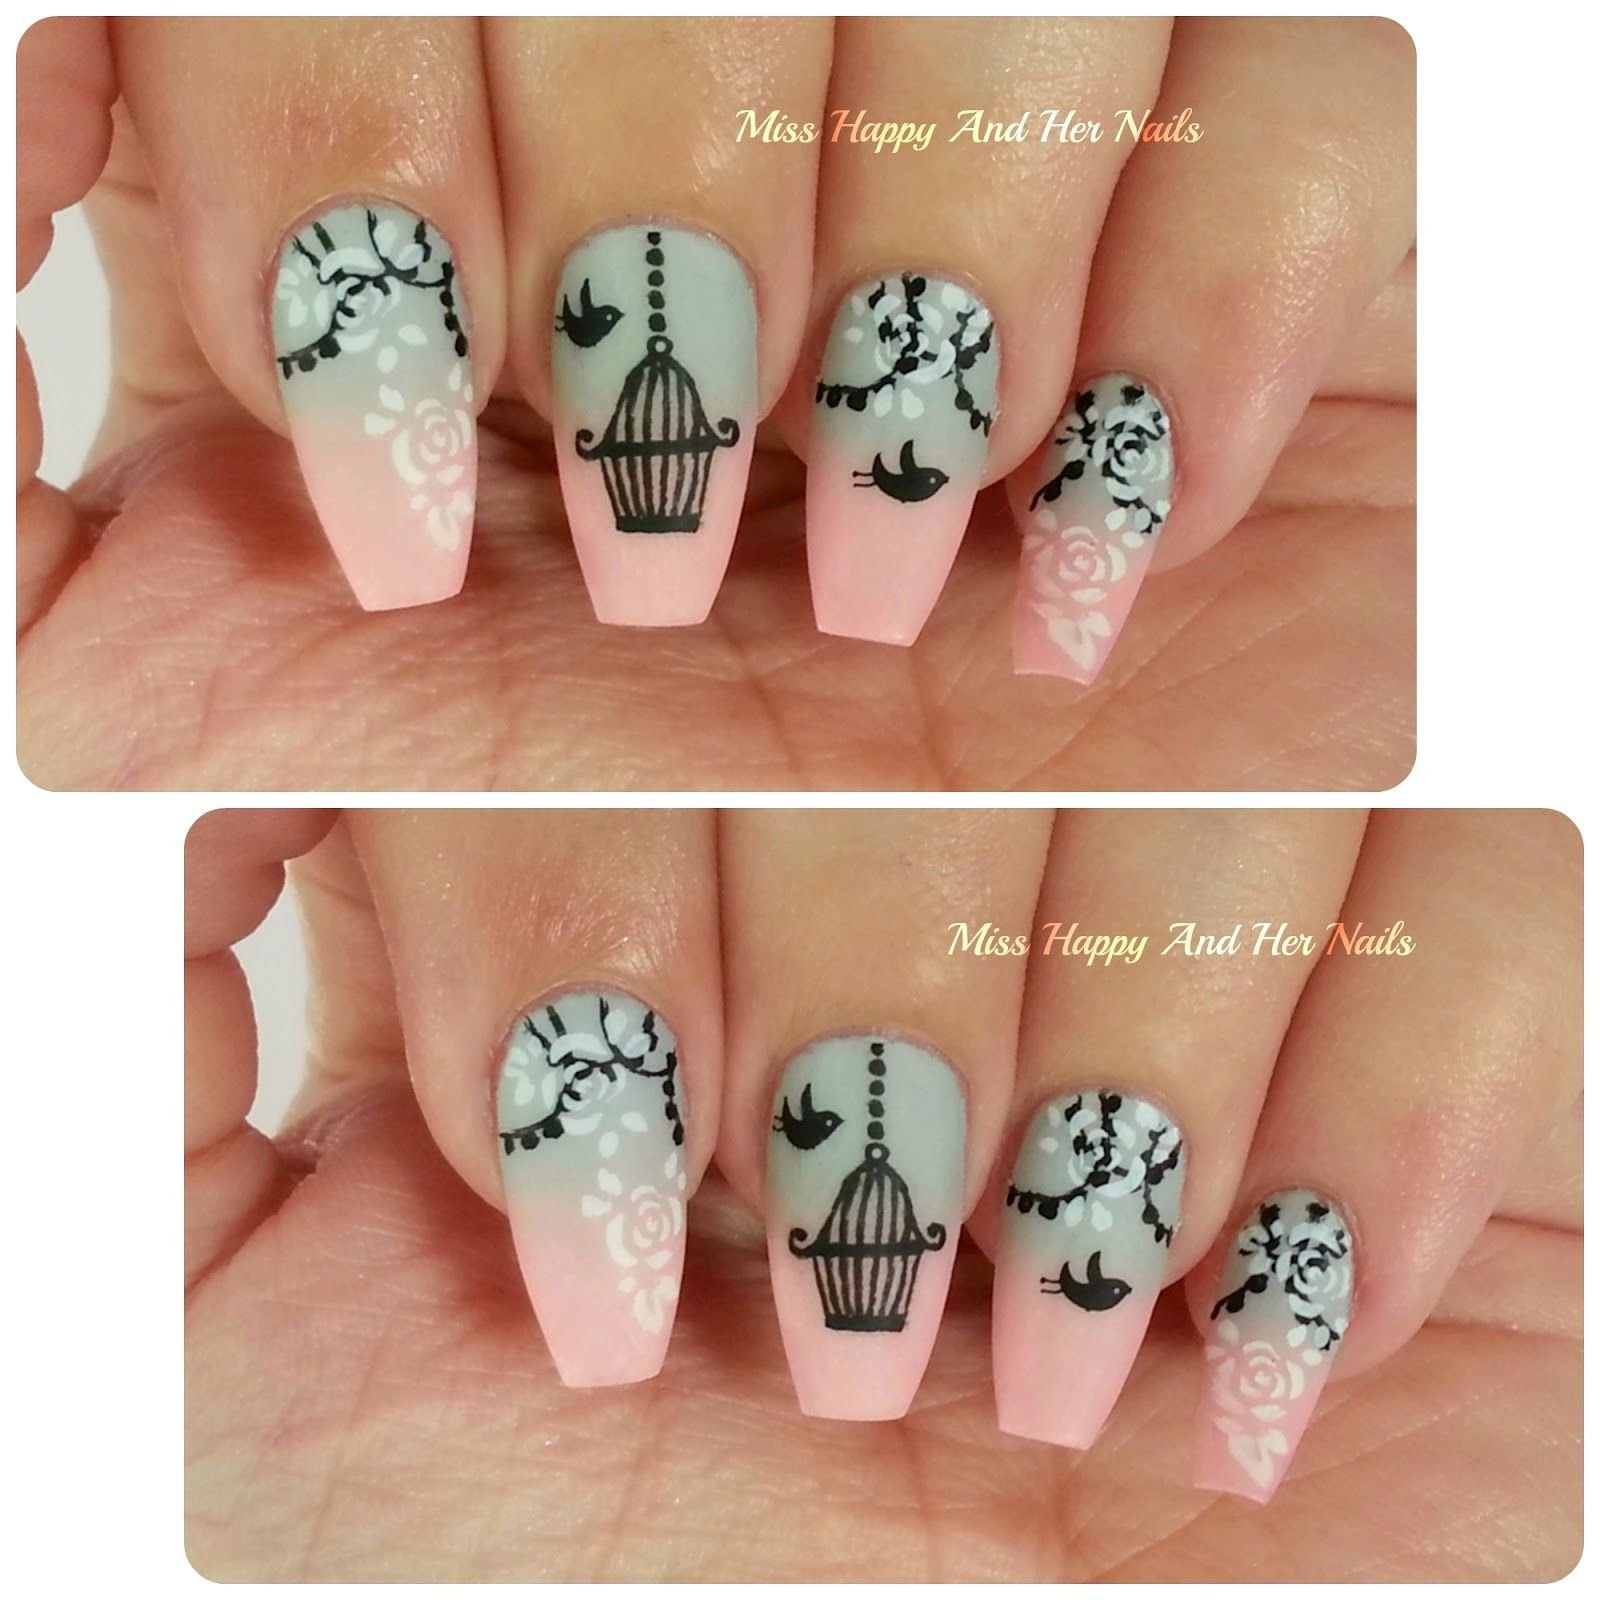 Miss Happy And Her Nails : Let me free nail art | nail art and ...